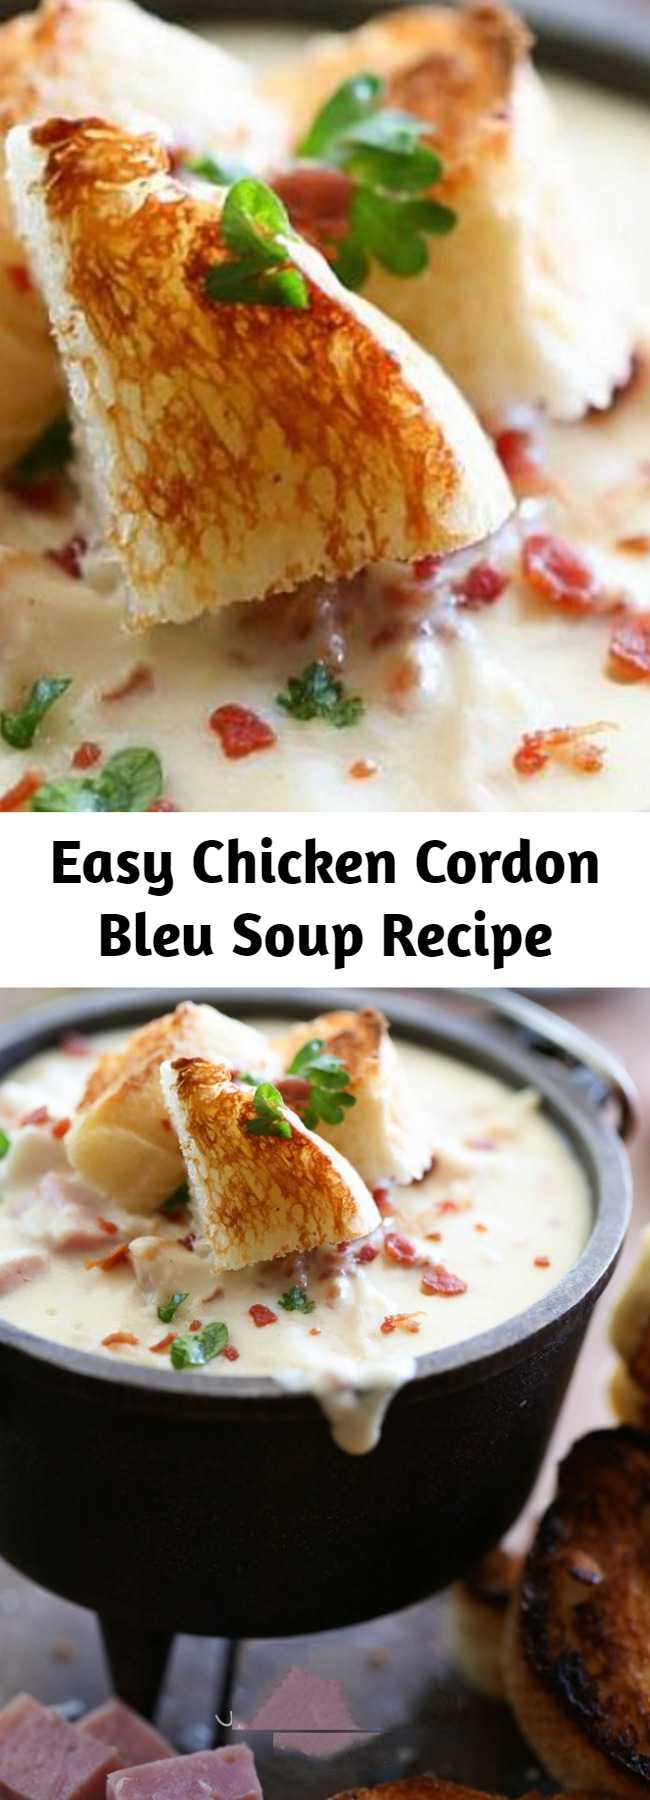 Easy Chicken Cordon Bleu Soup Recipe - Oh. My. Gosh. This is seriously the best soup ever! This recipe is PERFECT for the cooling temperatures and will make the perfect comfort you this fall and winter season! Everyone who tried this gave it rave reviews!